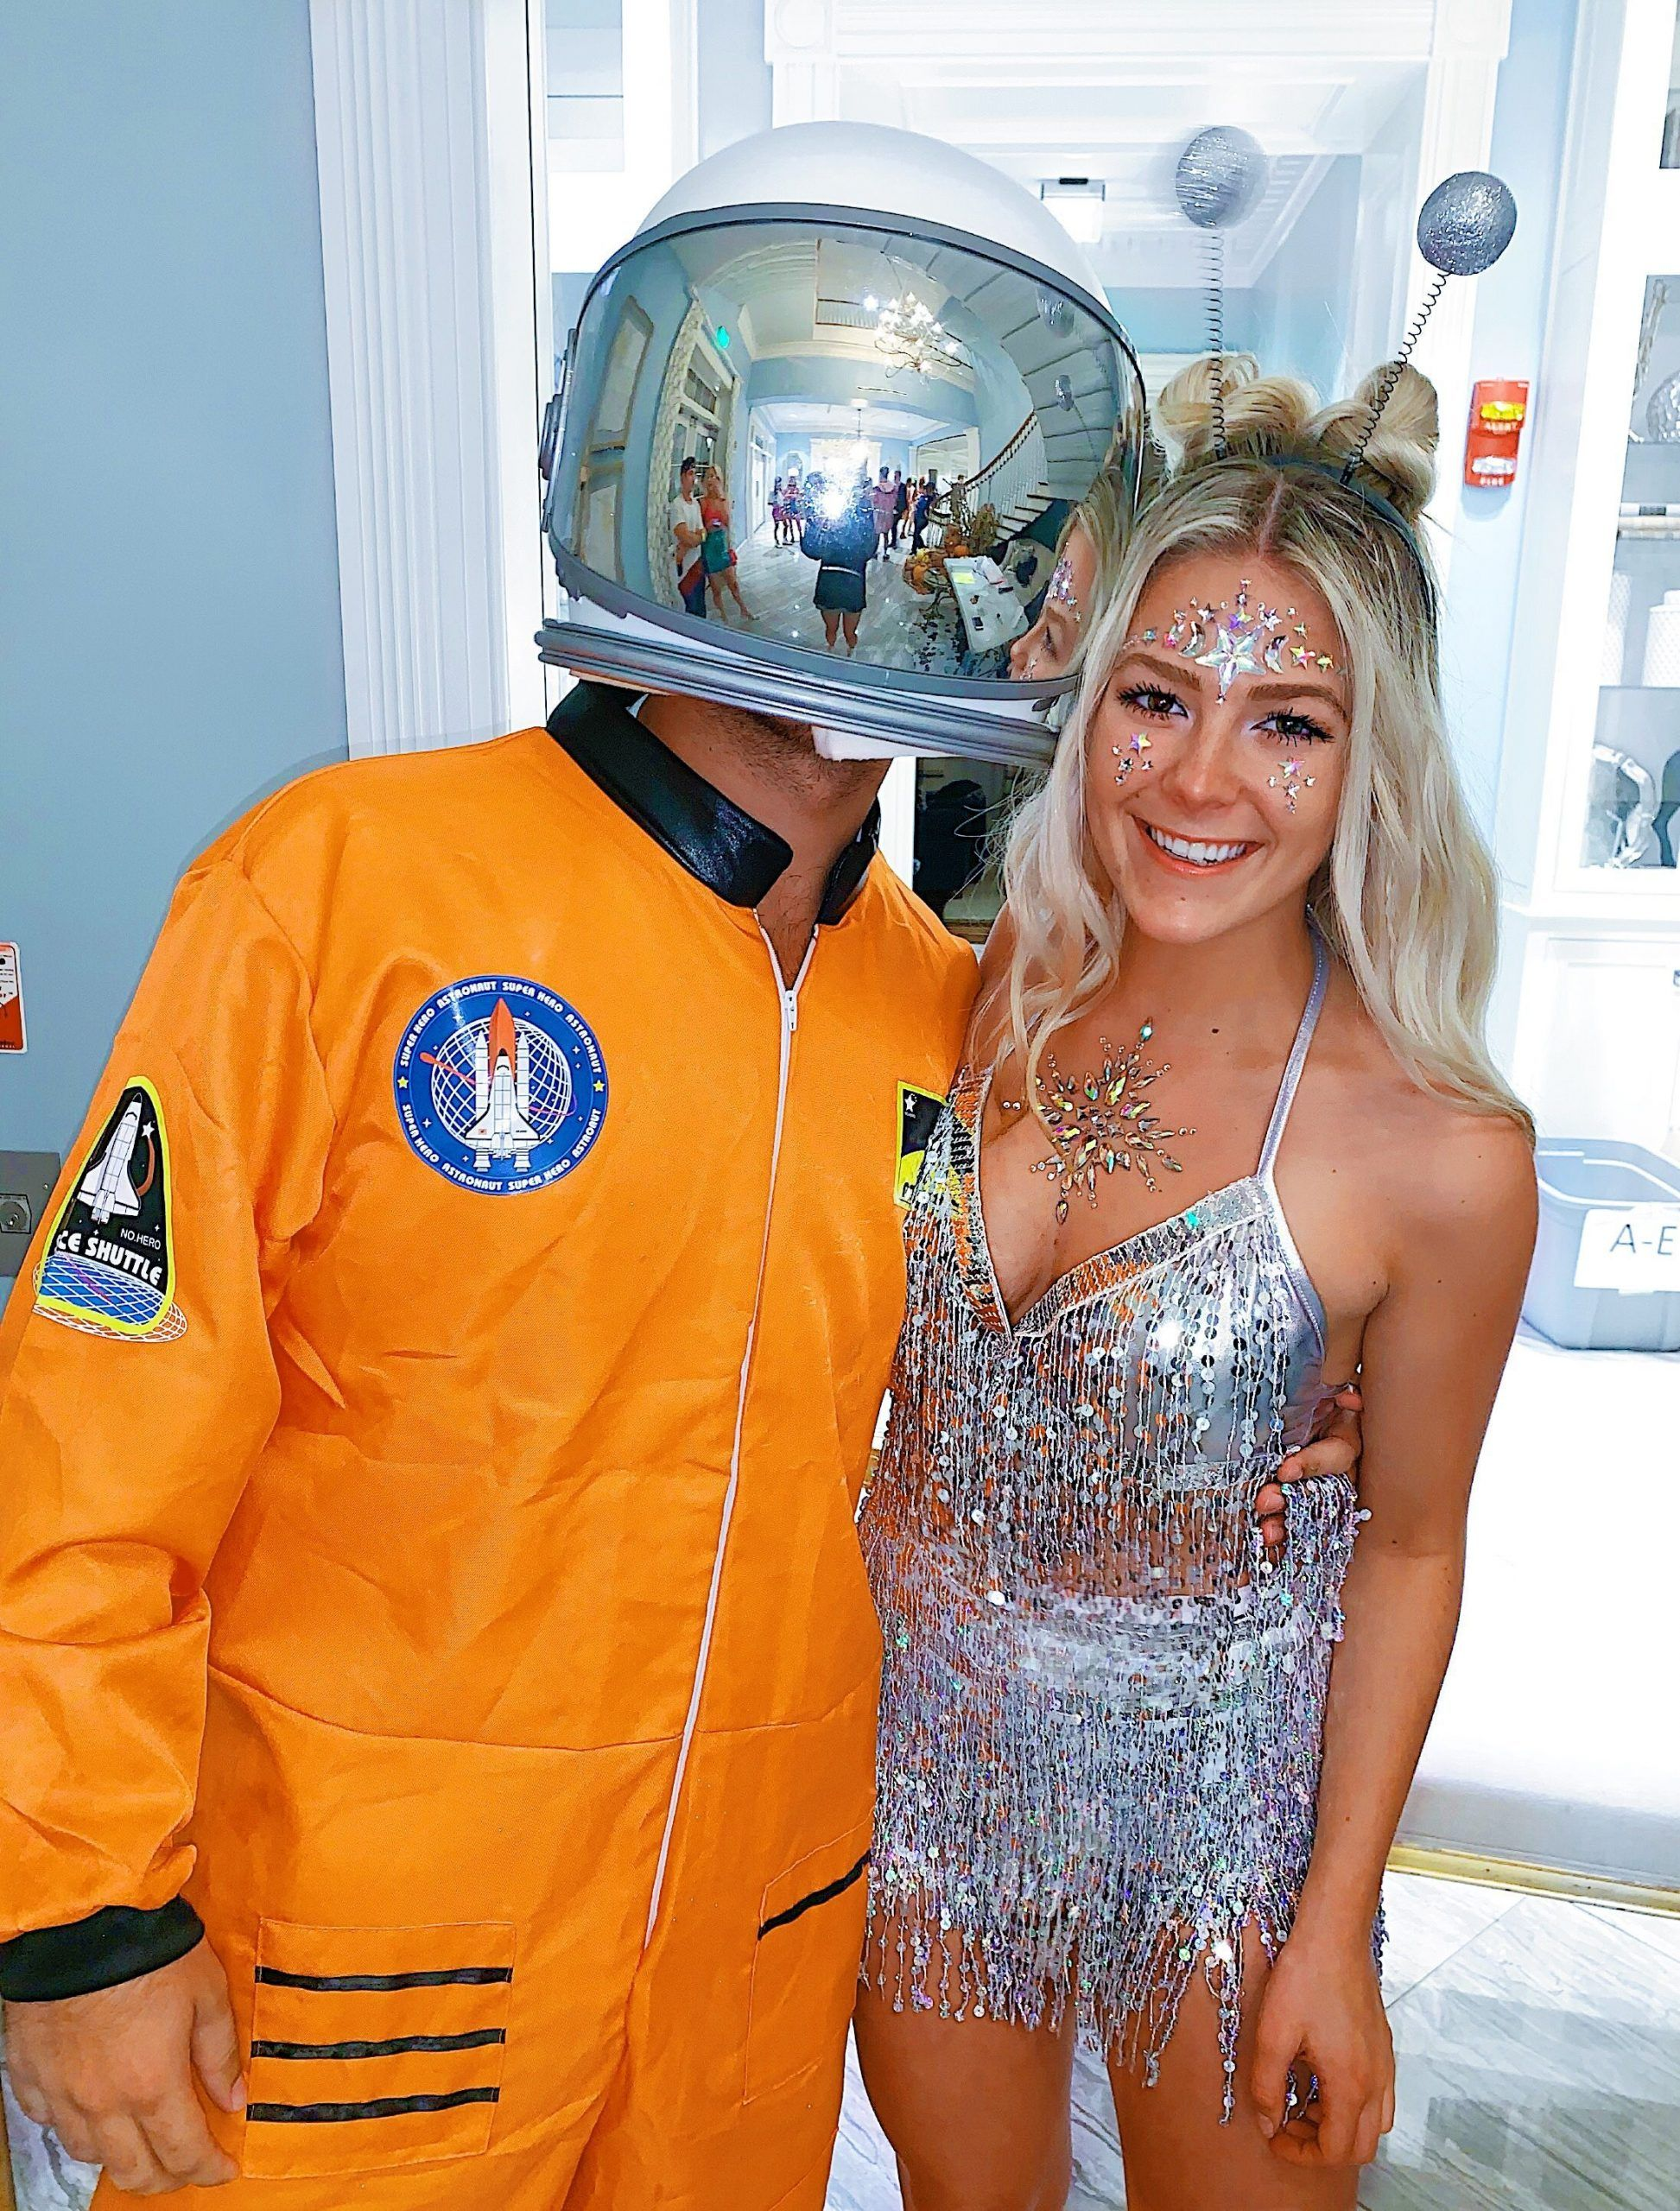 Alien and astronaut costume (2020) Astronaut costume